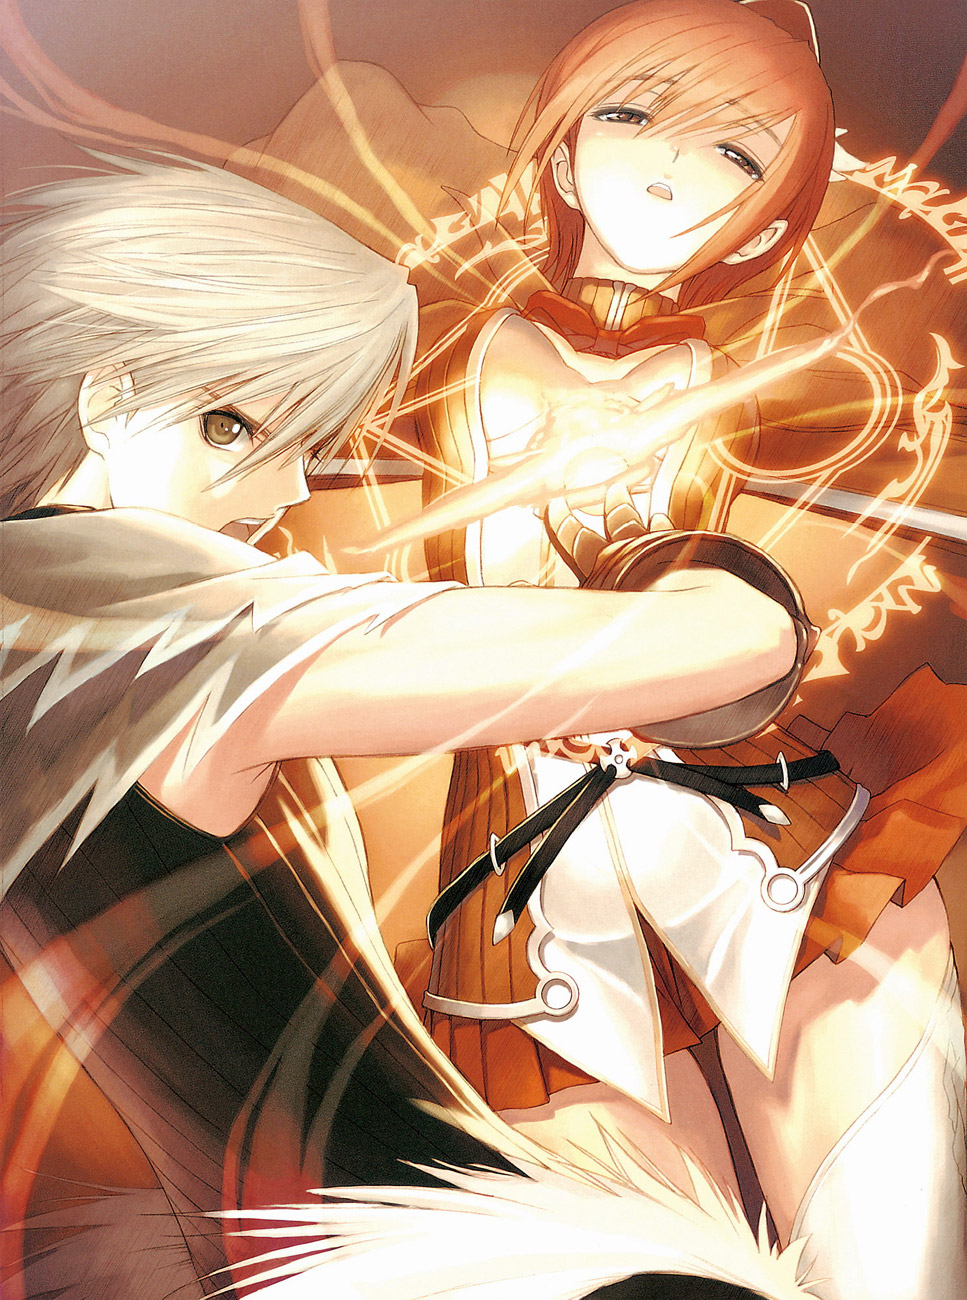 Shining Wind: Collection of visual materials image by Tony Taka